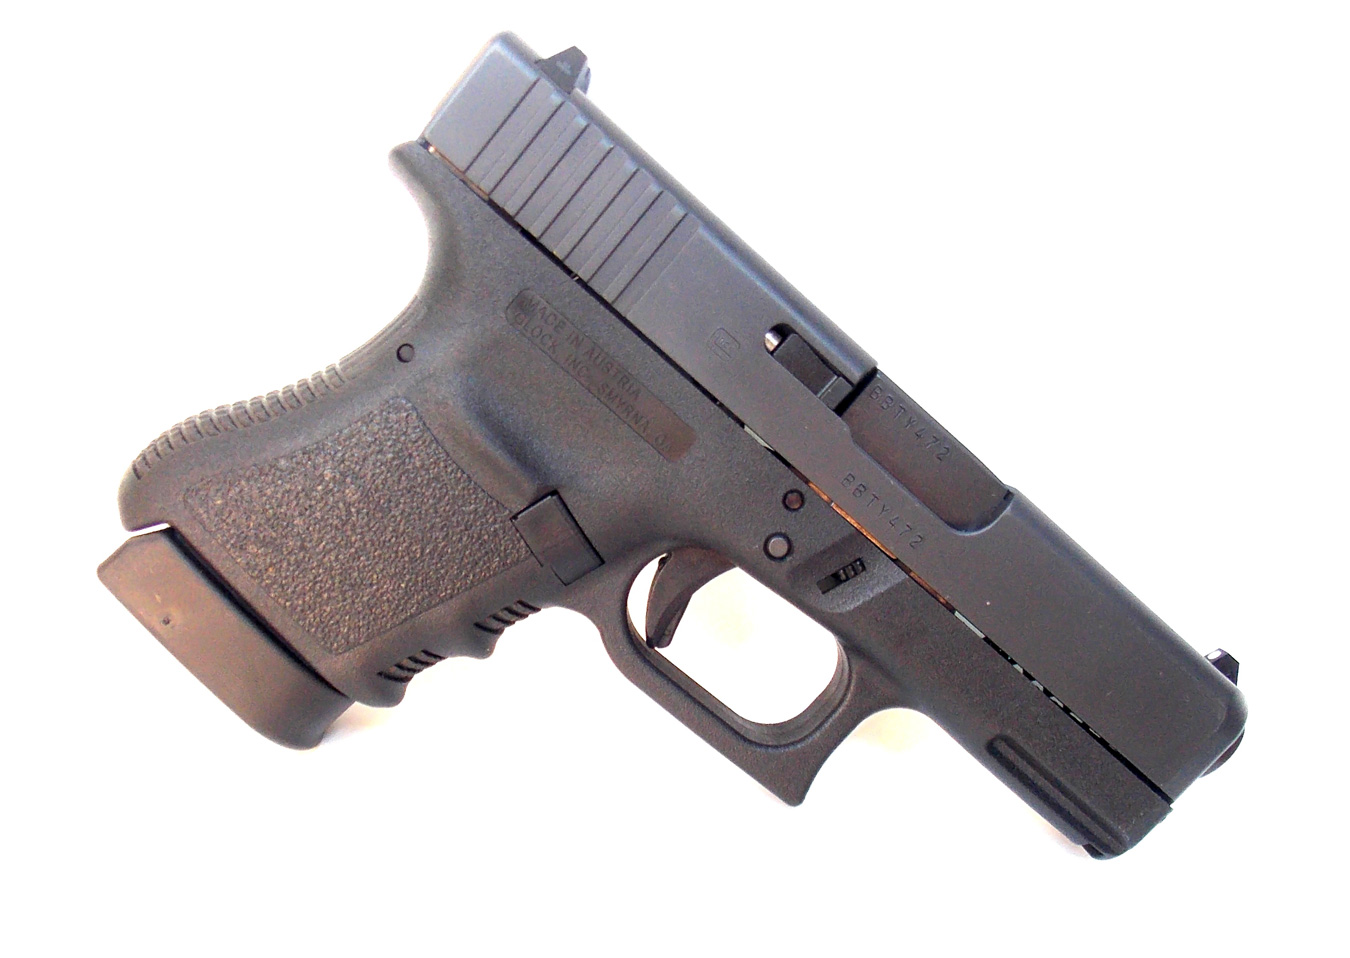 Glock 36 .45 ACP handgun right profile